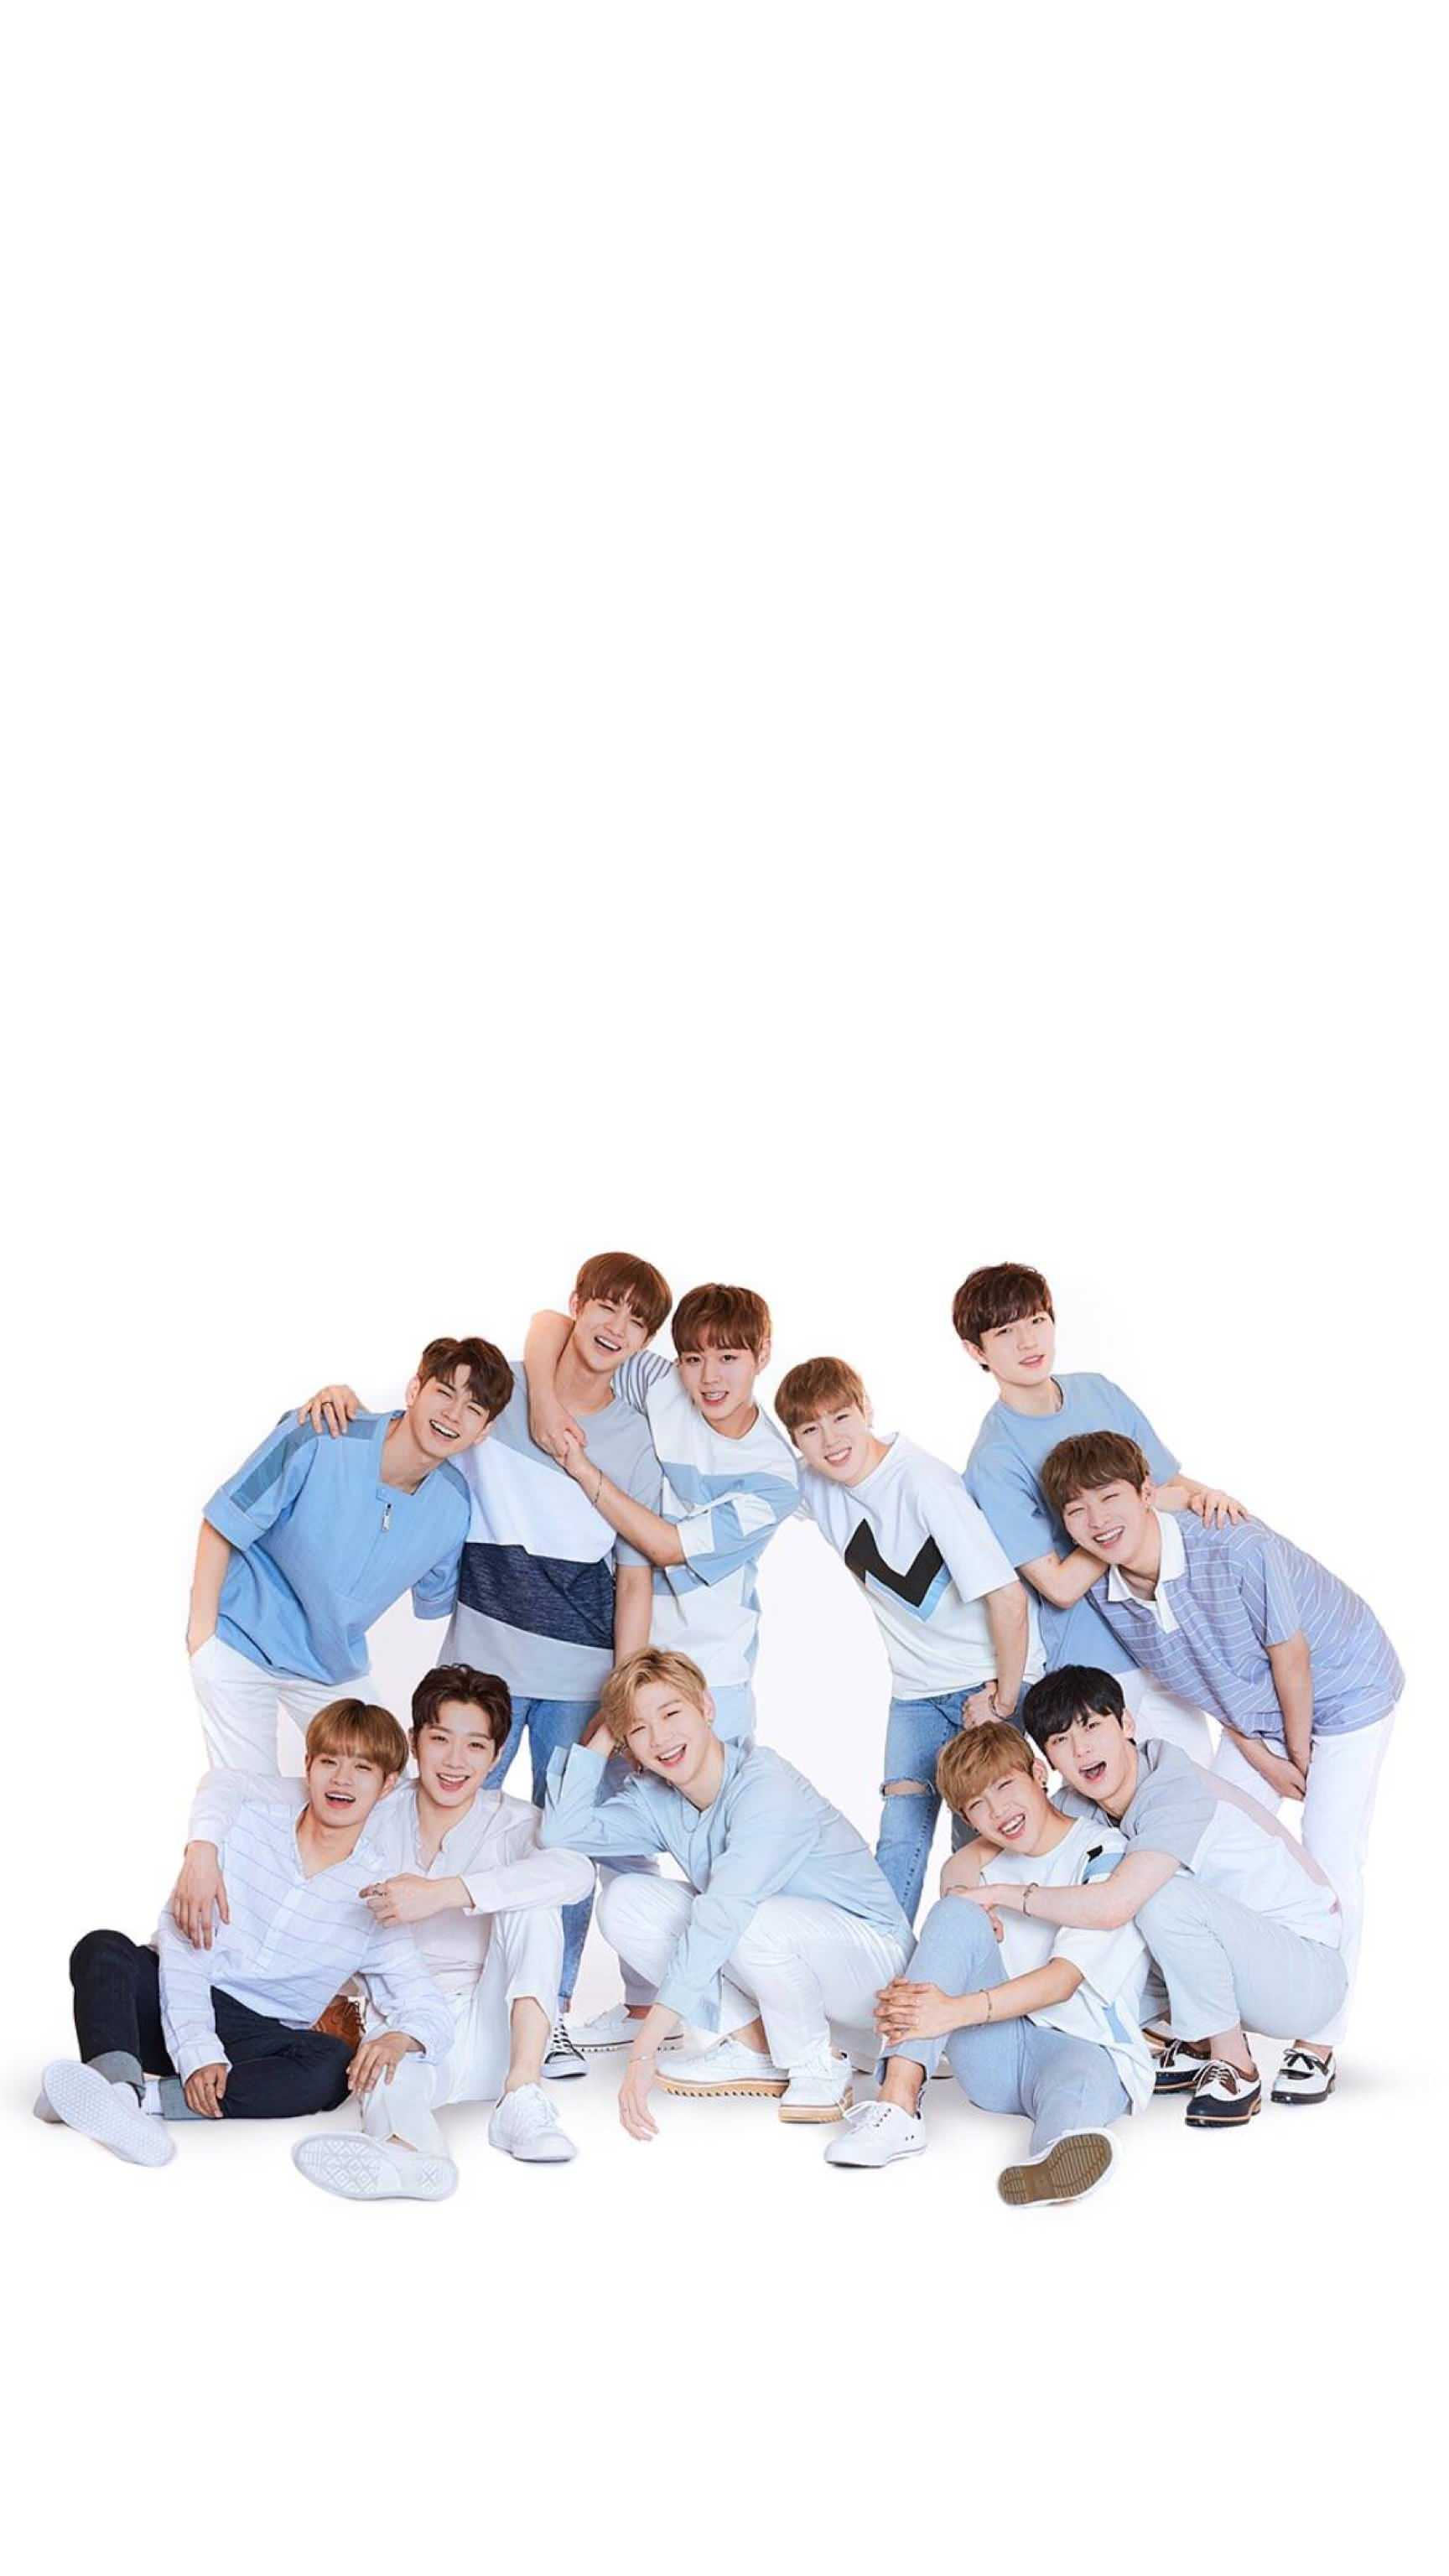 Wanna One wallpaper - Album on Imgur